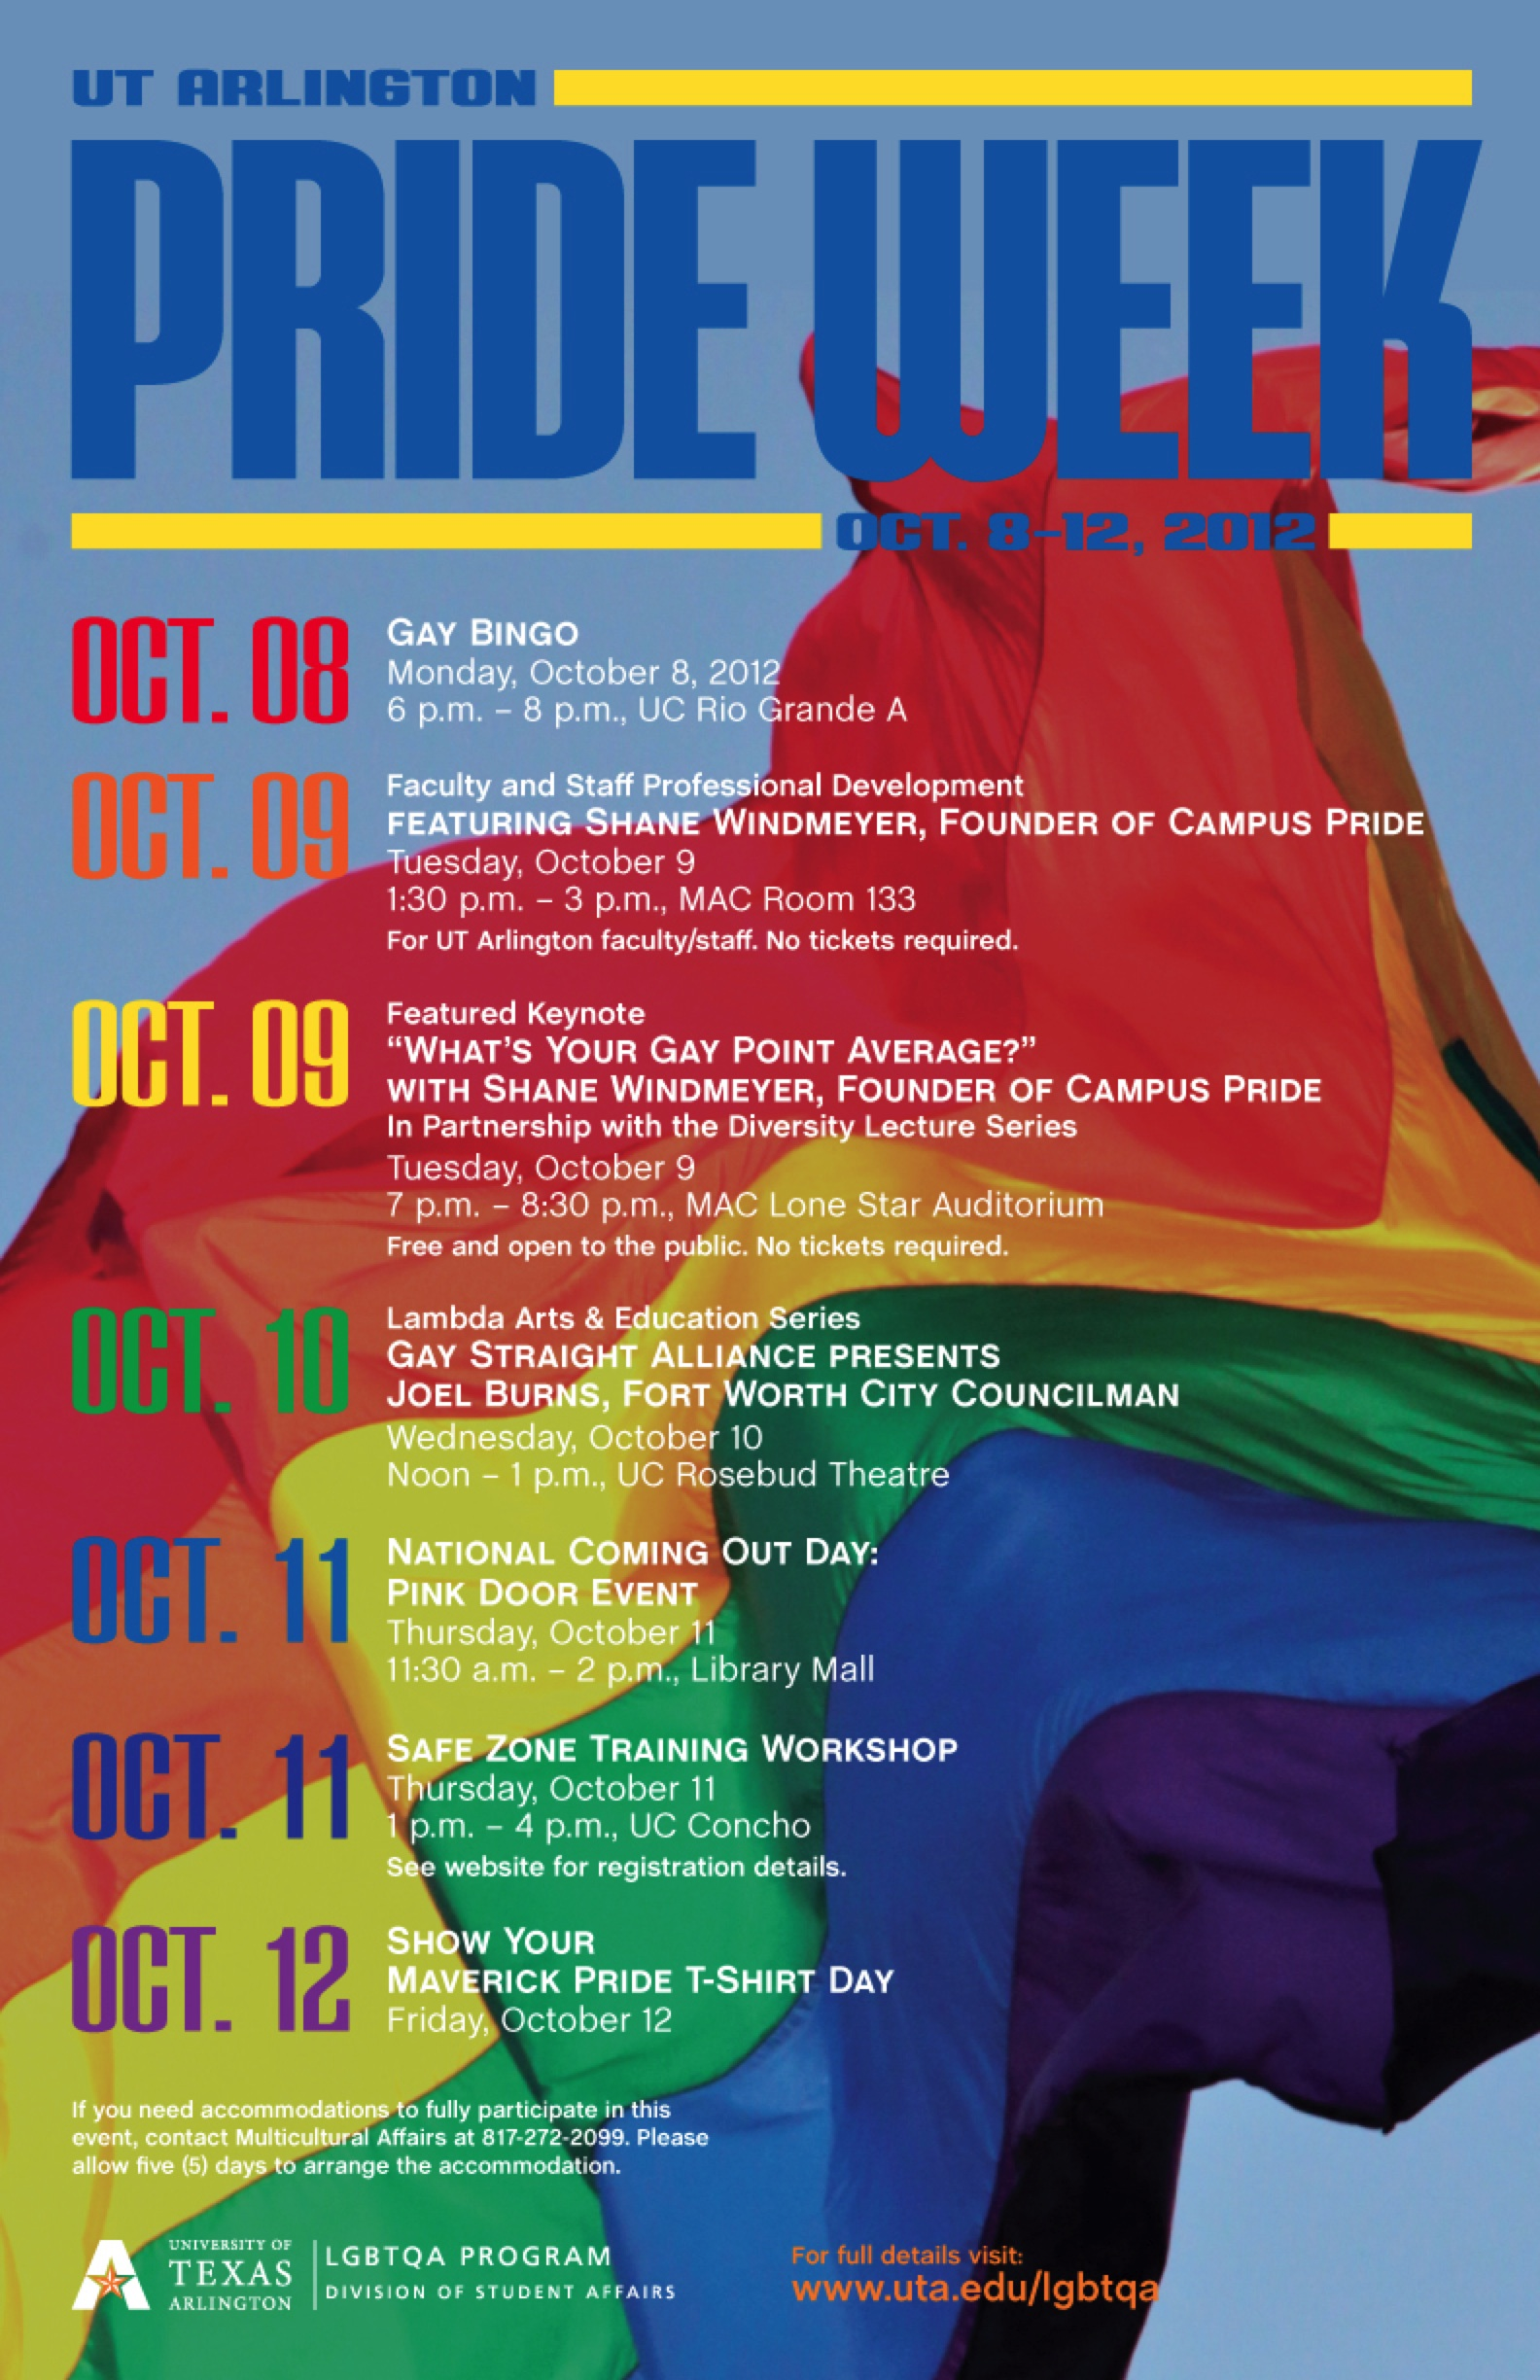 ... kick off tonight at 6 p.m. in the university center with gay bingo.